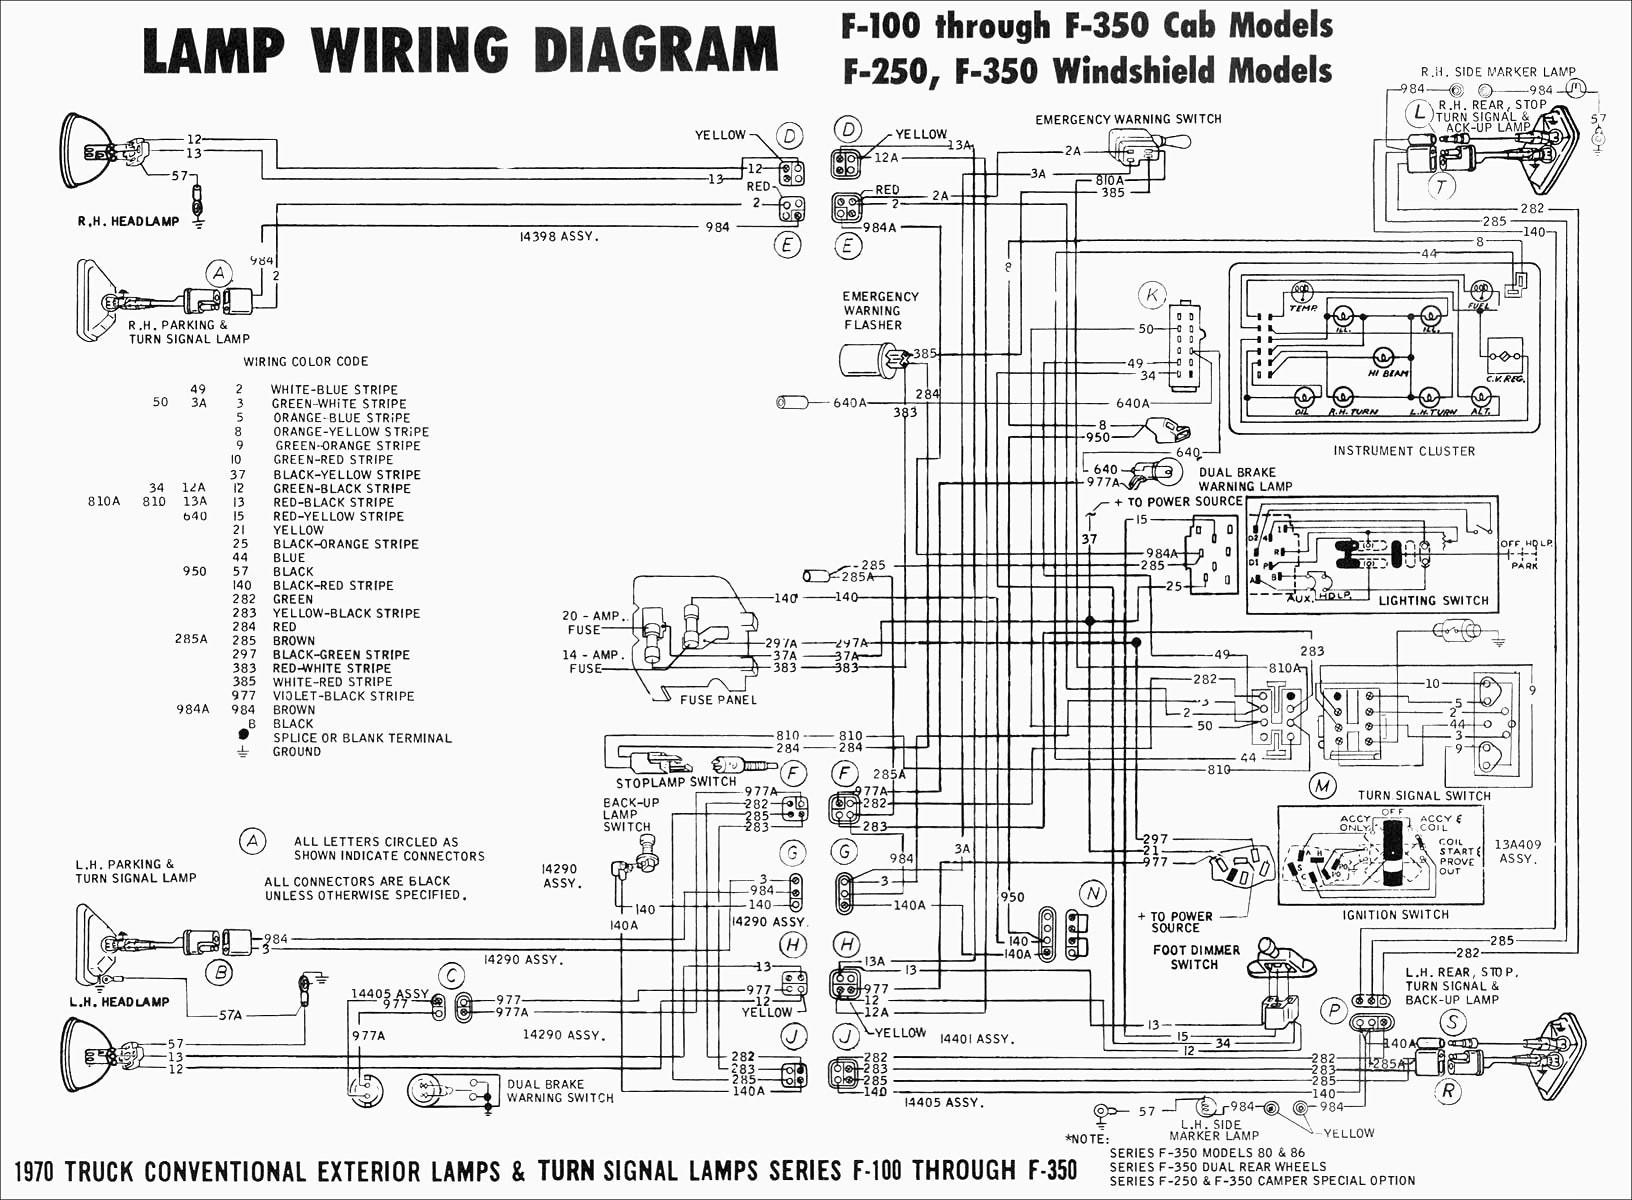 yardman mtd wiring diagram mtd ignition switch wiring diagram | free wiring diagram 2002 mtd wiring  diagram